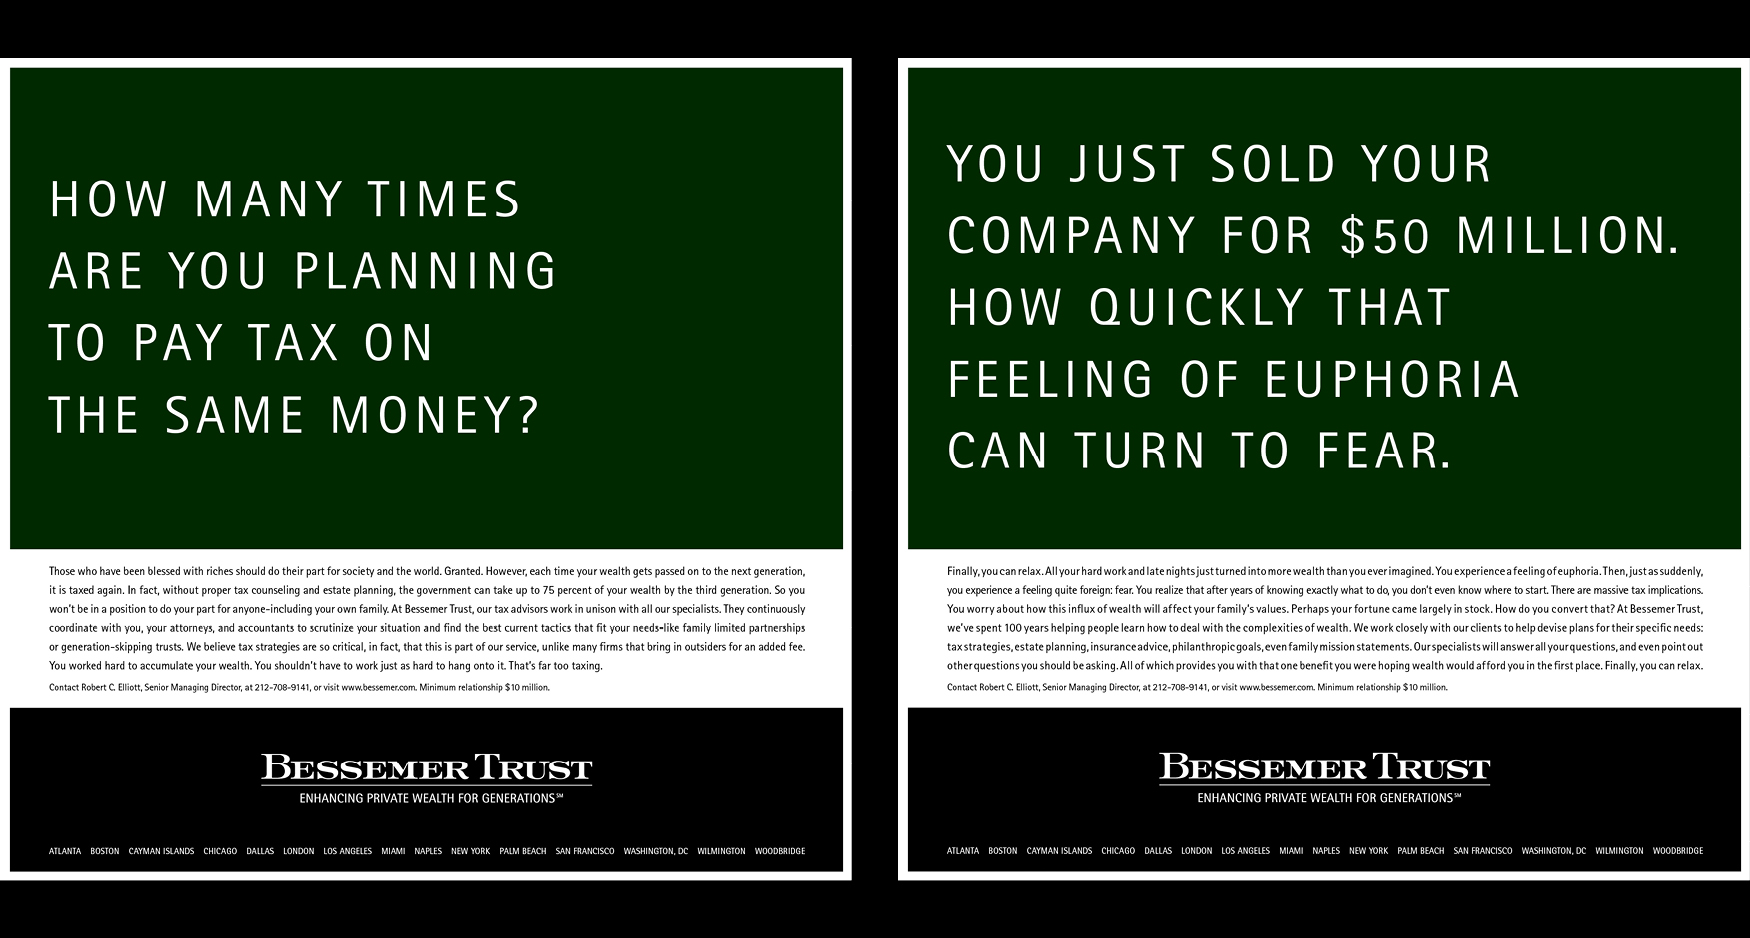 BP Large Images23 - BESSEMER TRUST - WEALTH MANAGEMENT CAMPAIGN